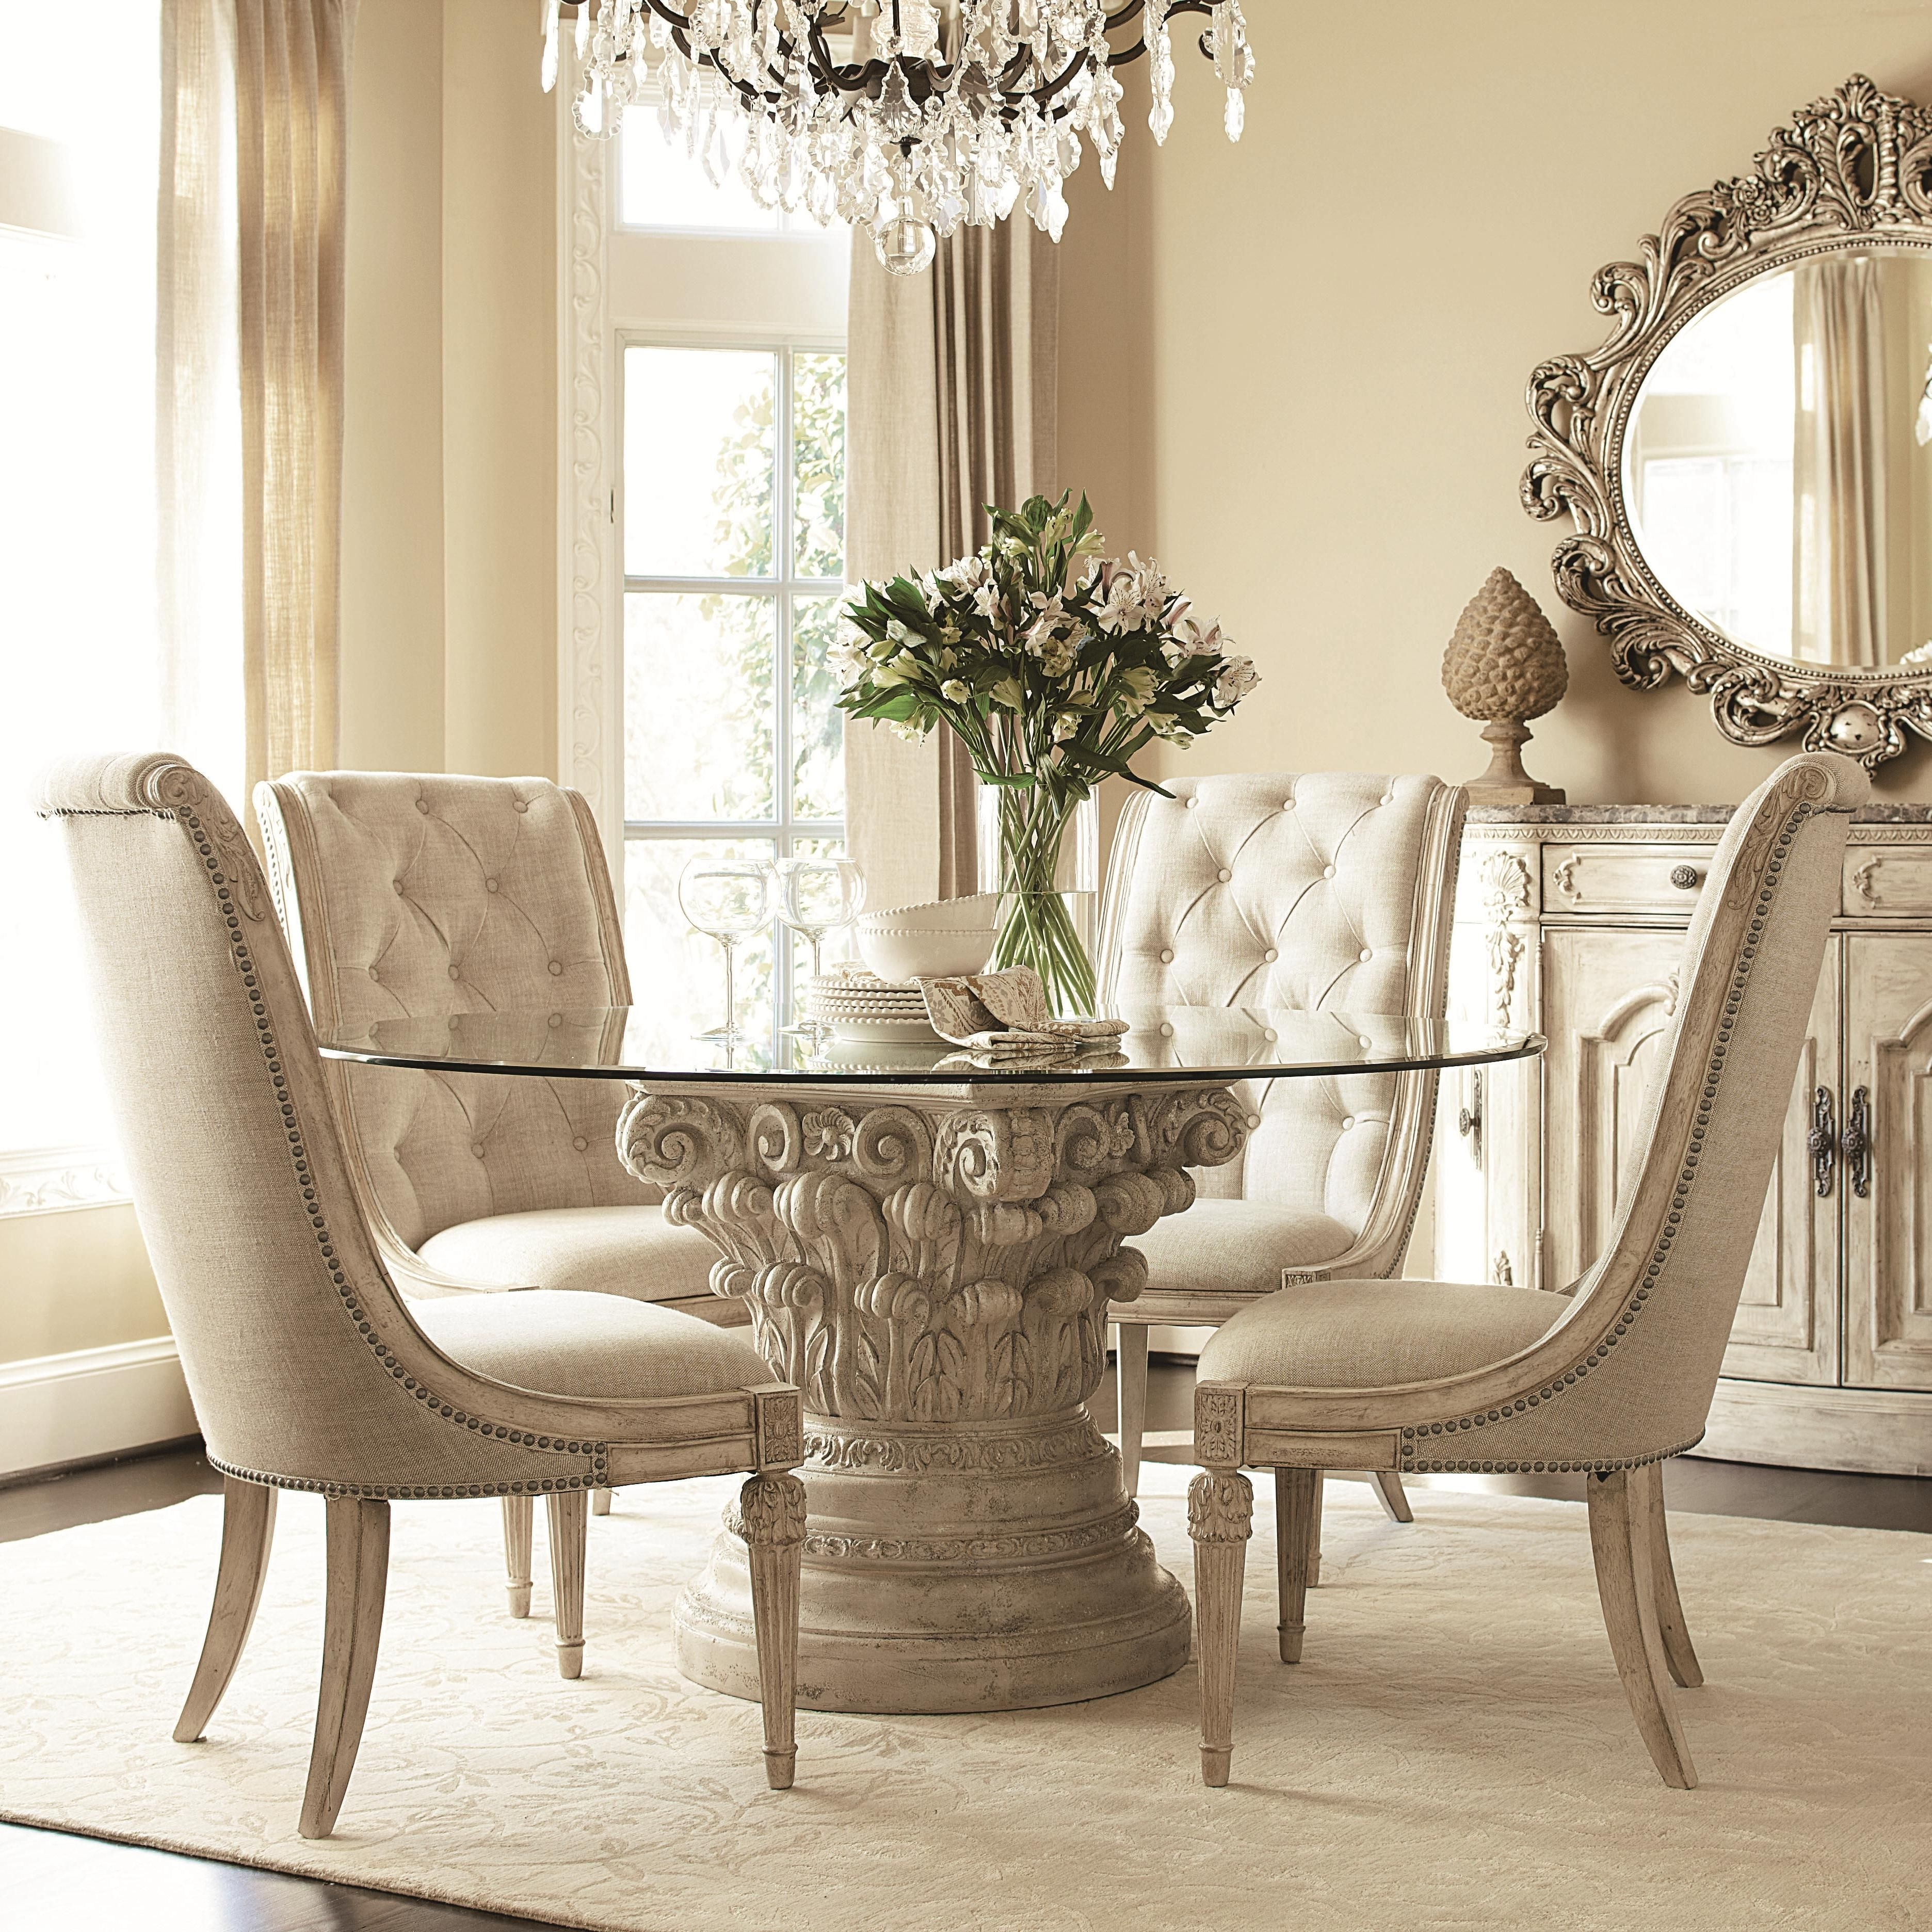 Current Market 6 Piece Dining Sets With Host And Side Chairs Within Jessica Mcclintock Home – The Boutique Collection 5 Piece Round (View 4 of 25)